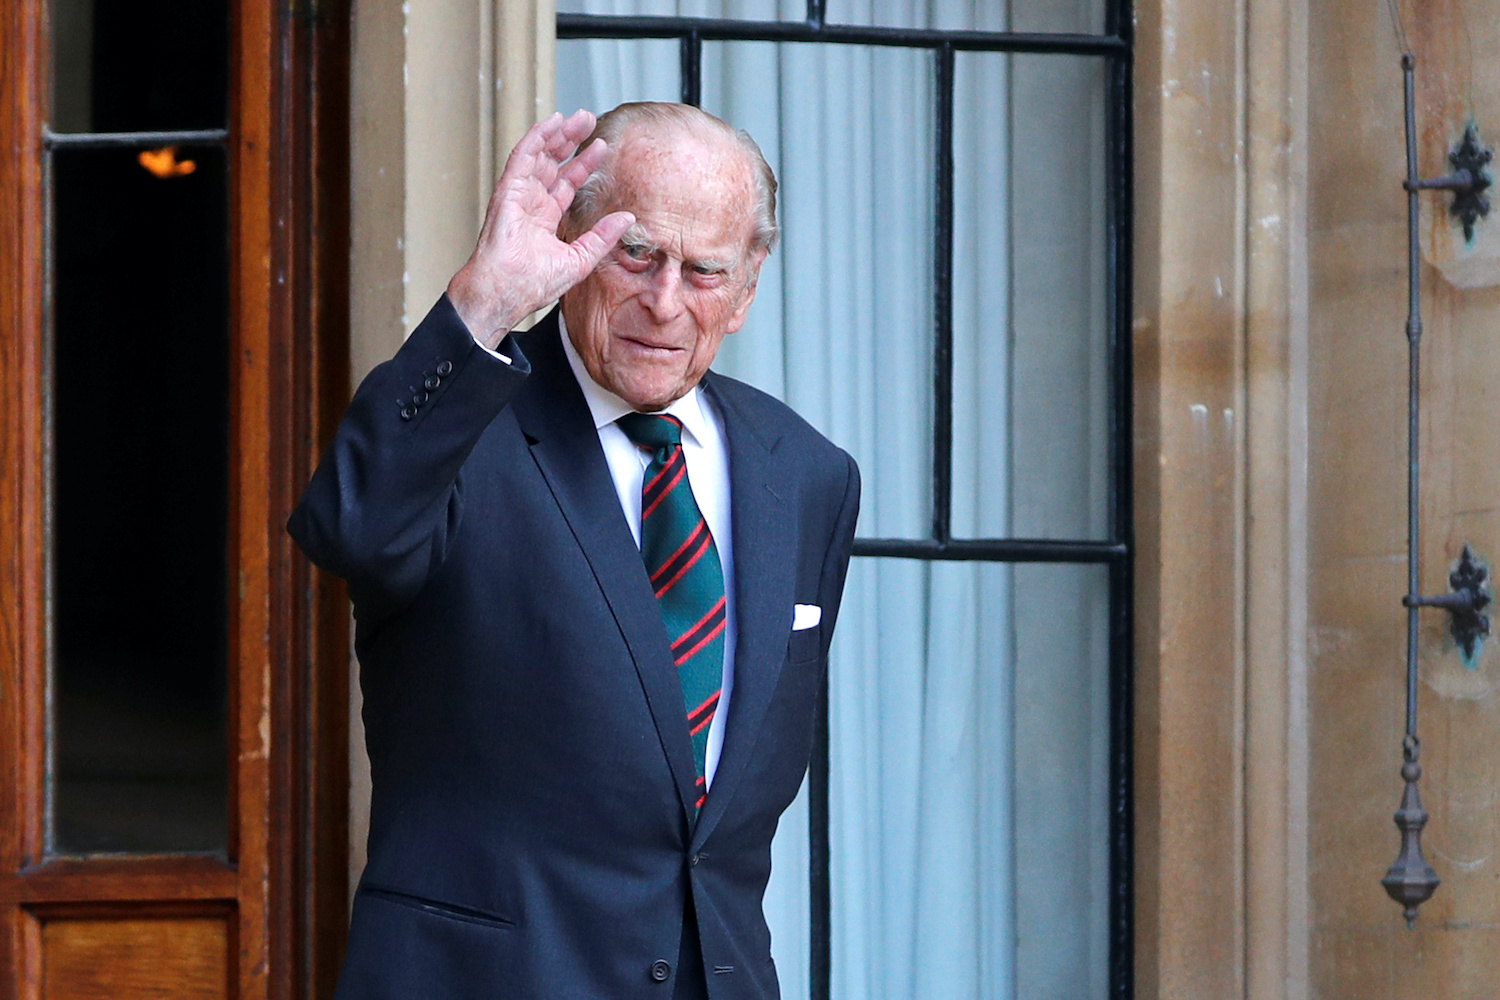 Prince Philip Linked To 12 Women But No Proof Of ...